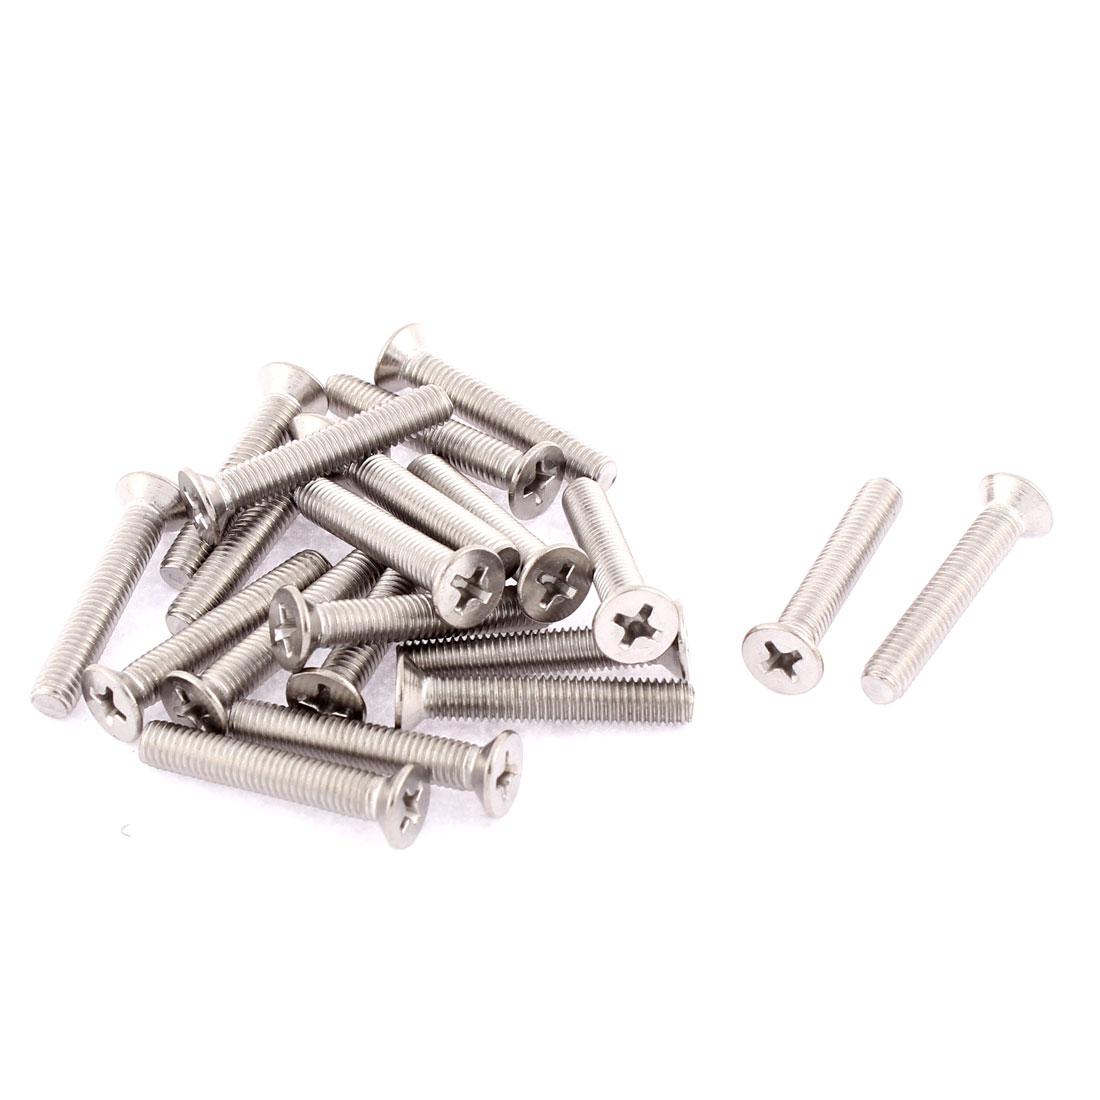 M5 x 30mm Phillips Head Stainless Steel Countersunk Bolts Machine Screws 20 Pcs